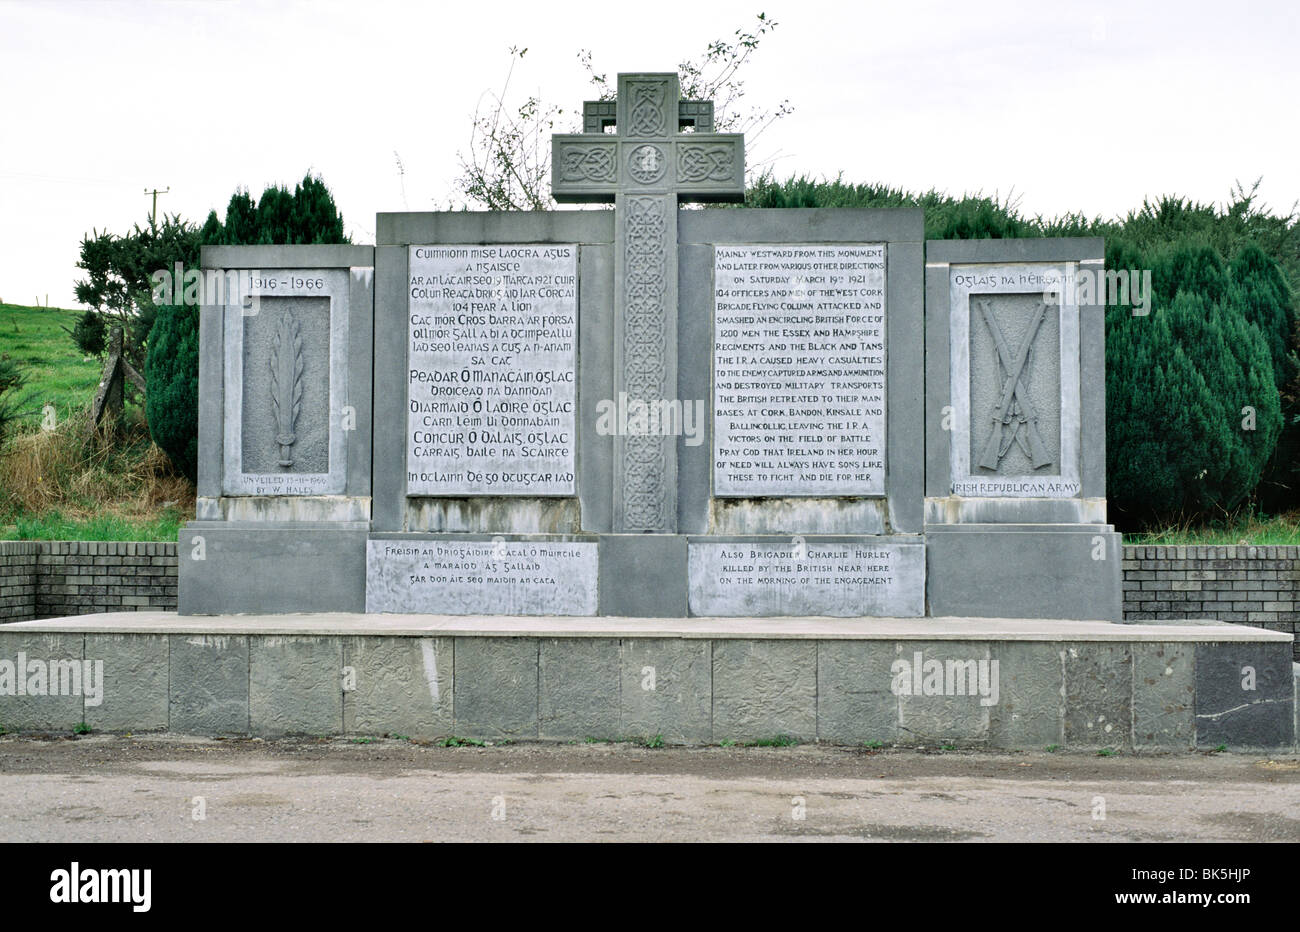 Memorial in village of Crossbarry, Co. Cork, Ireland. Here Tom Barry's Brigade IRA flying column attacked British - Stock Image